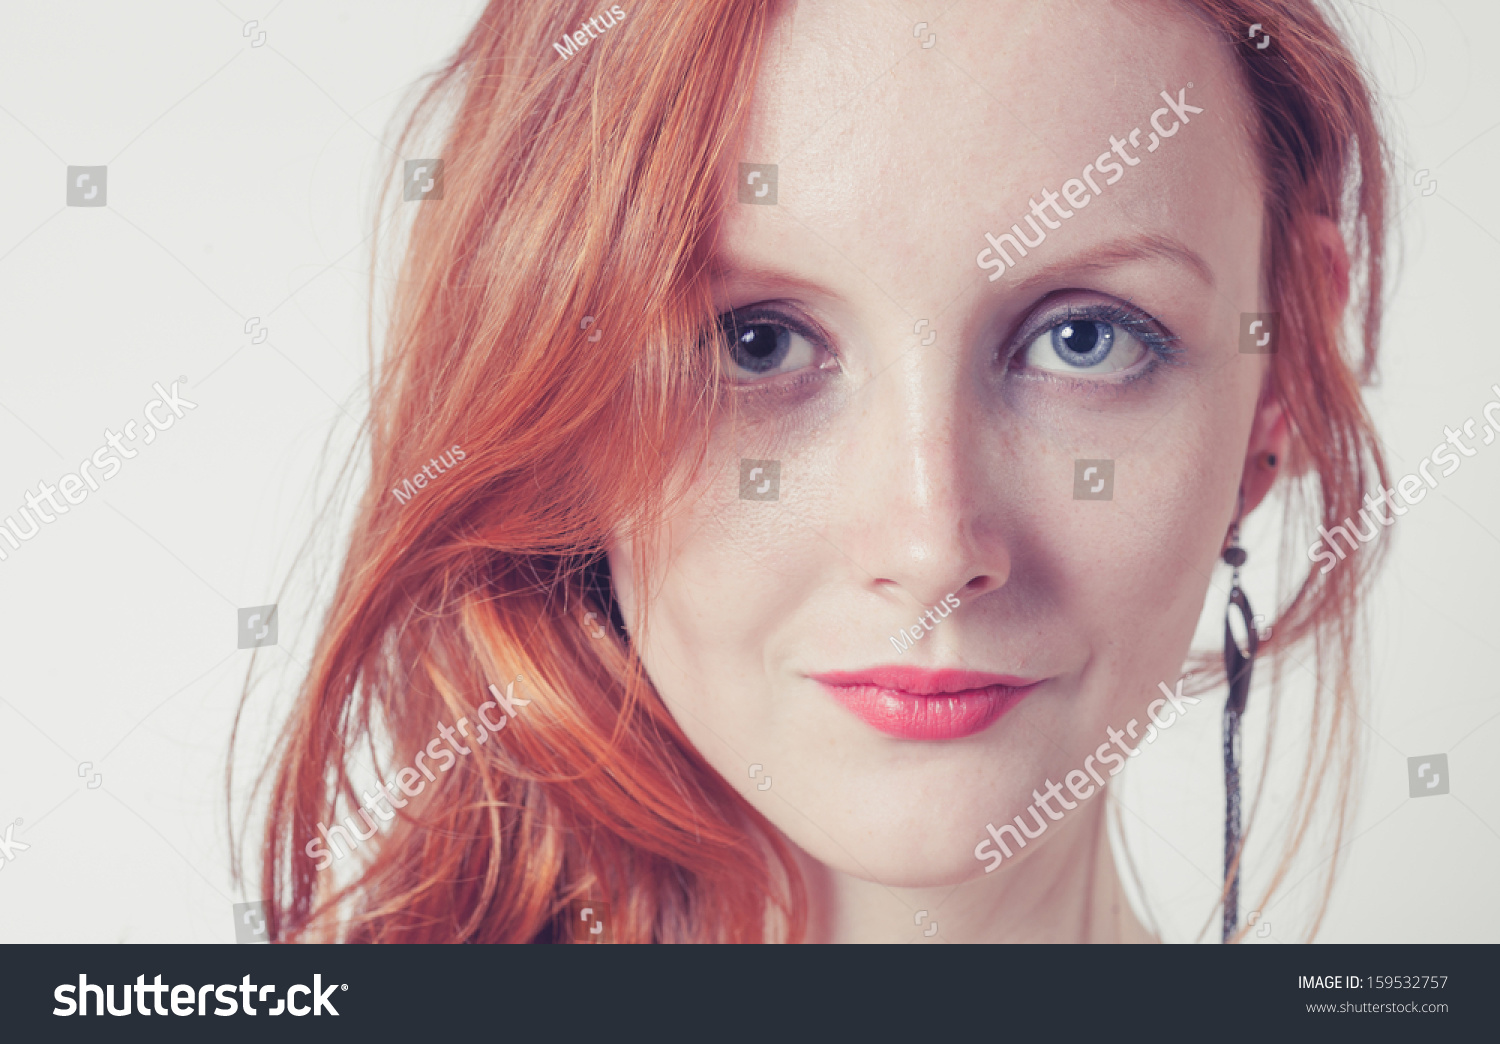 Toned image of the Beautiful sexy woman with red hair (ginger haired or carrot top)